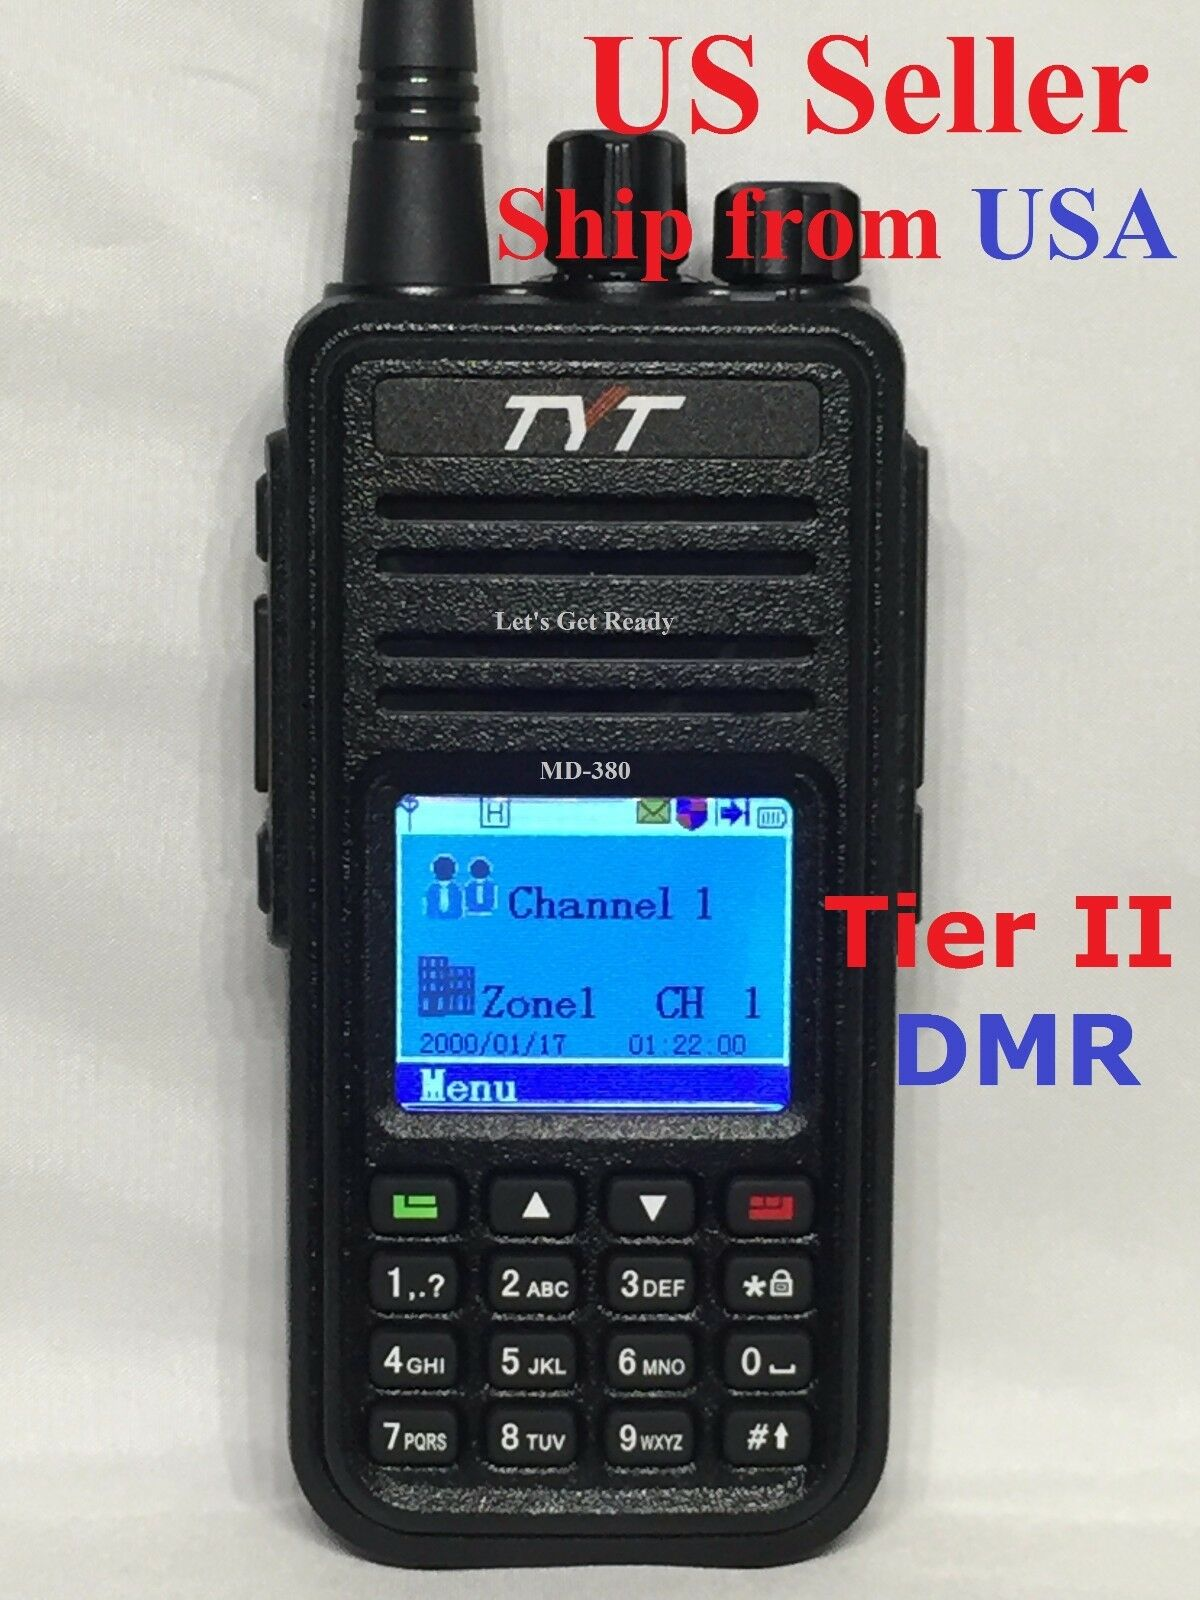 TYT MD-380 UHF Analog/Digital Tier II DMR DMR Radio USB cable Software US Seller